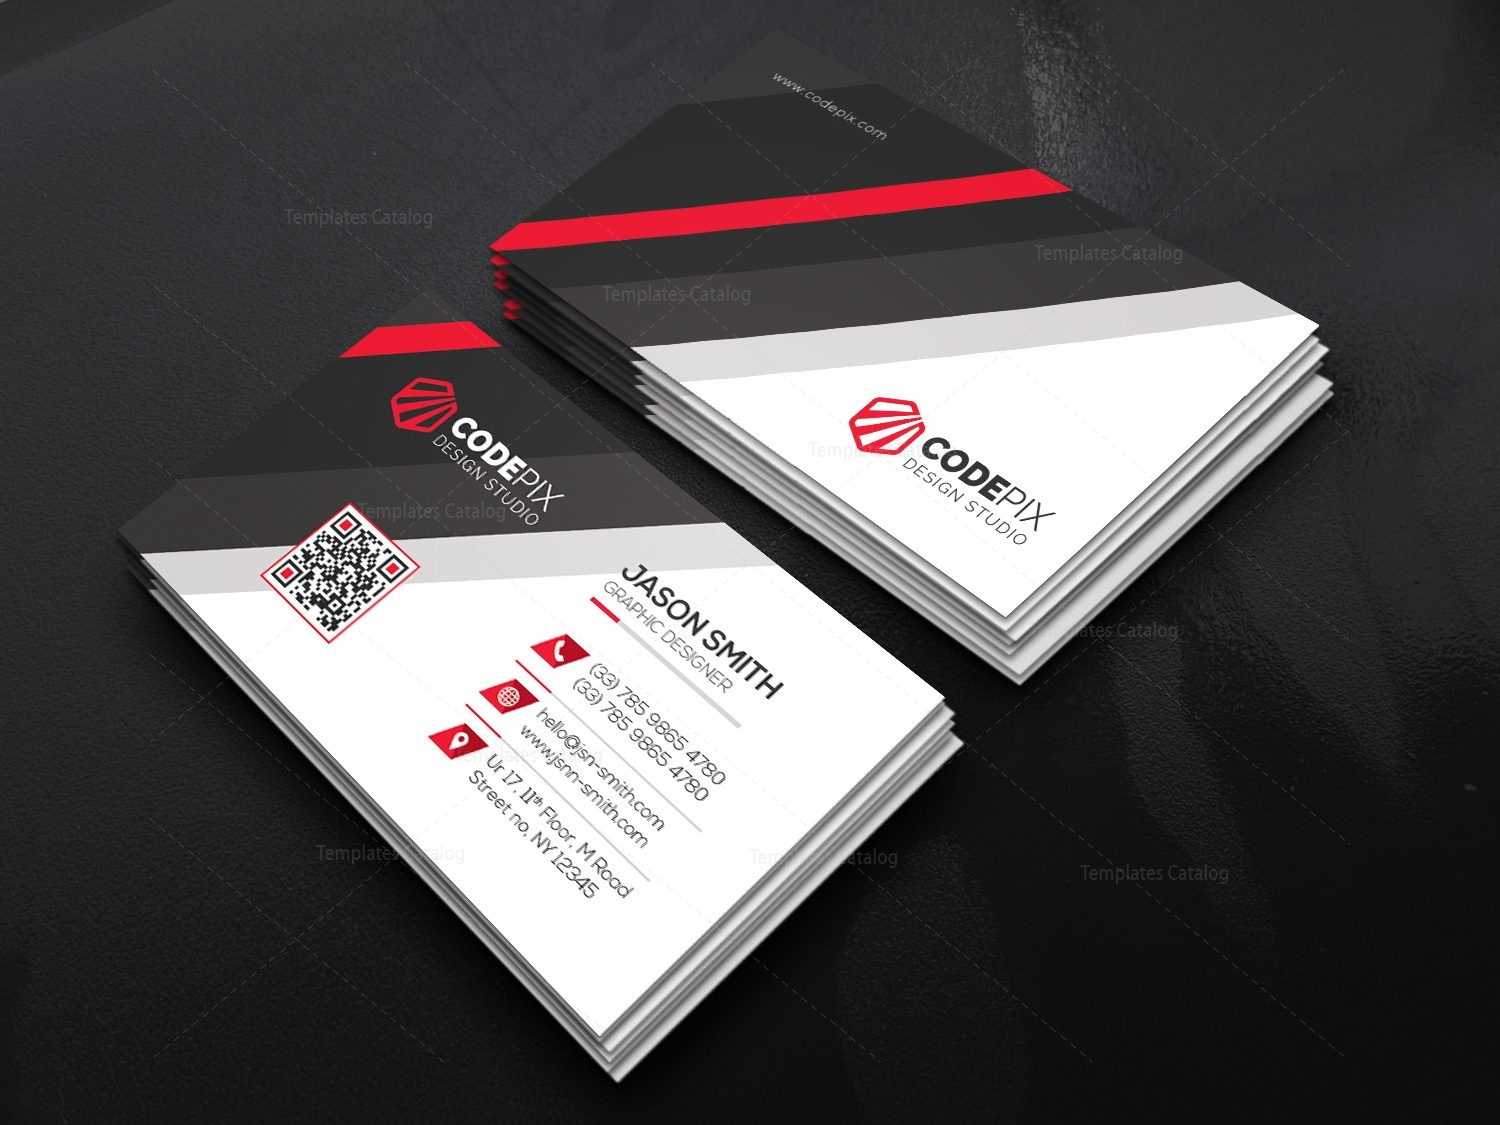 Psd business card templates image collections free business cards psd business card template archives template catalog business card template with stripe shapes magicingreecefo image collections magicingreecefo Gallery